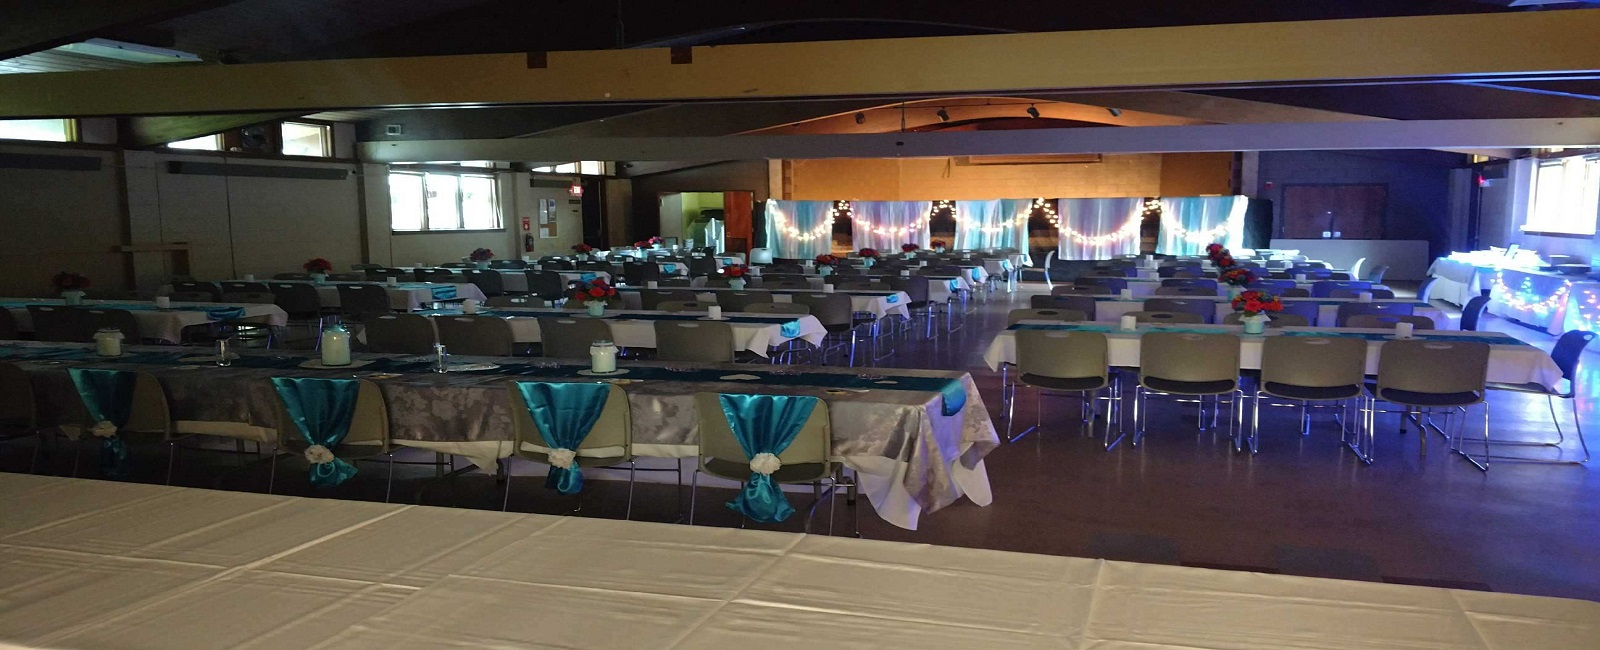 Picture of the hall setup for a wedding reception at Wil-O-Way Grant.